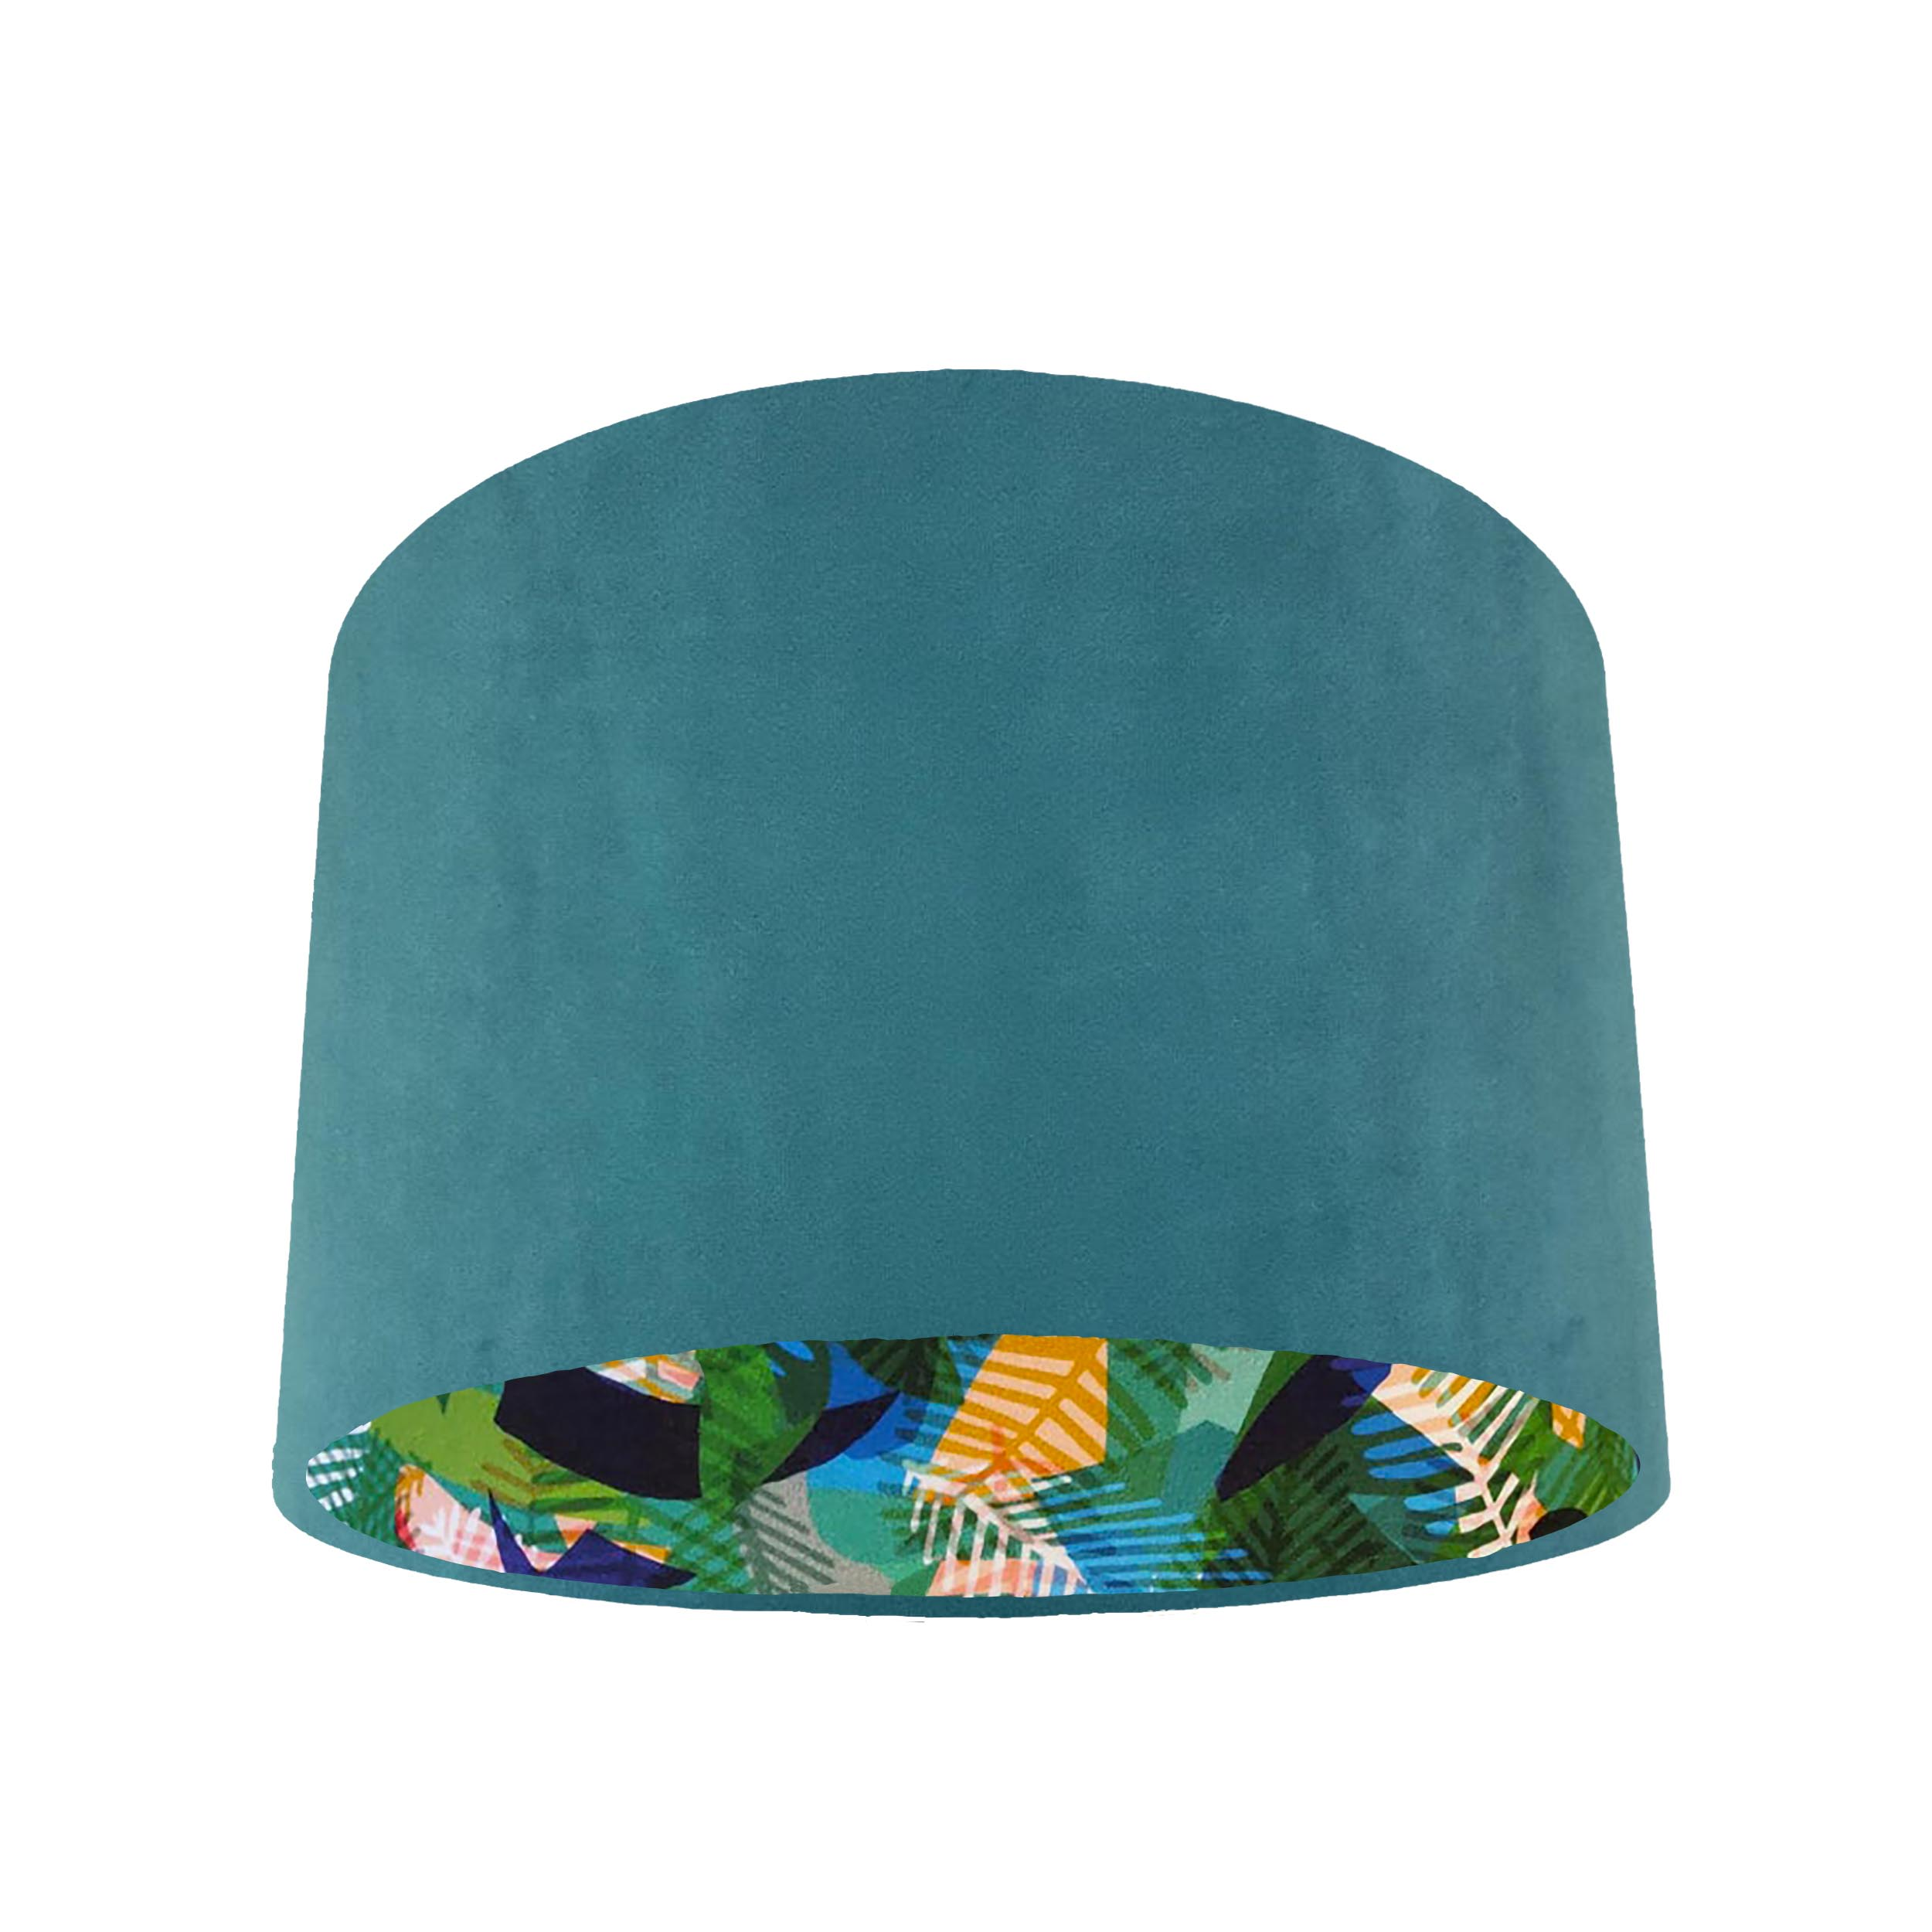 Teal Velvet Lampshade with Green Geometric Leaf Lining